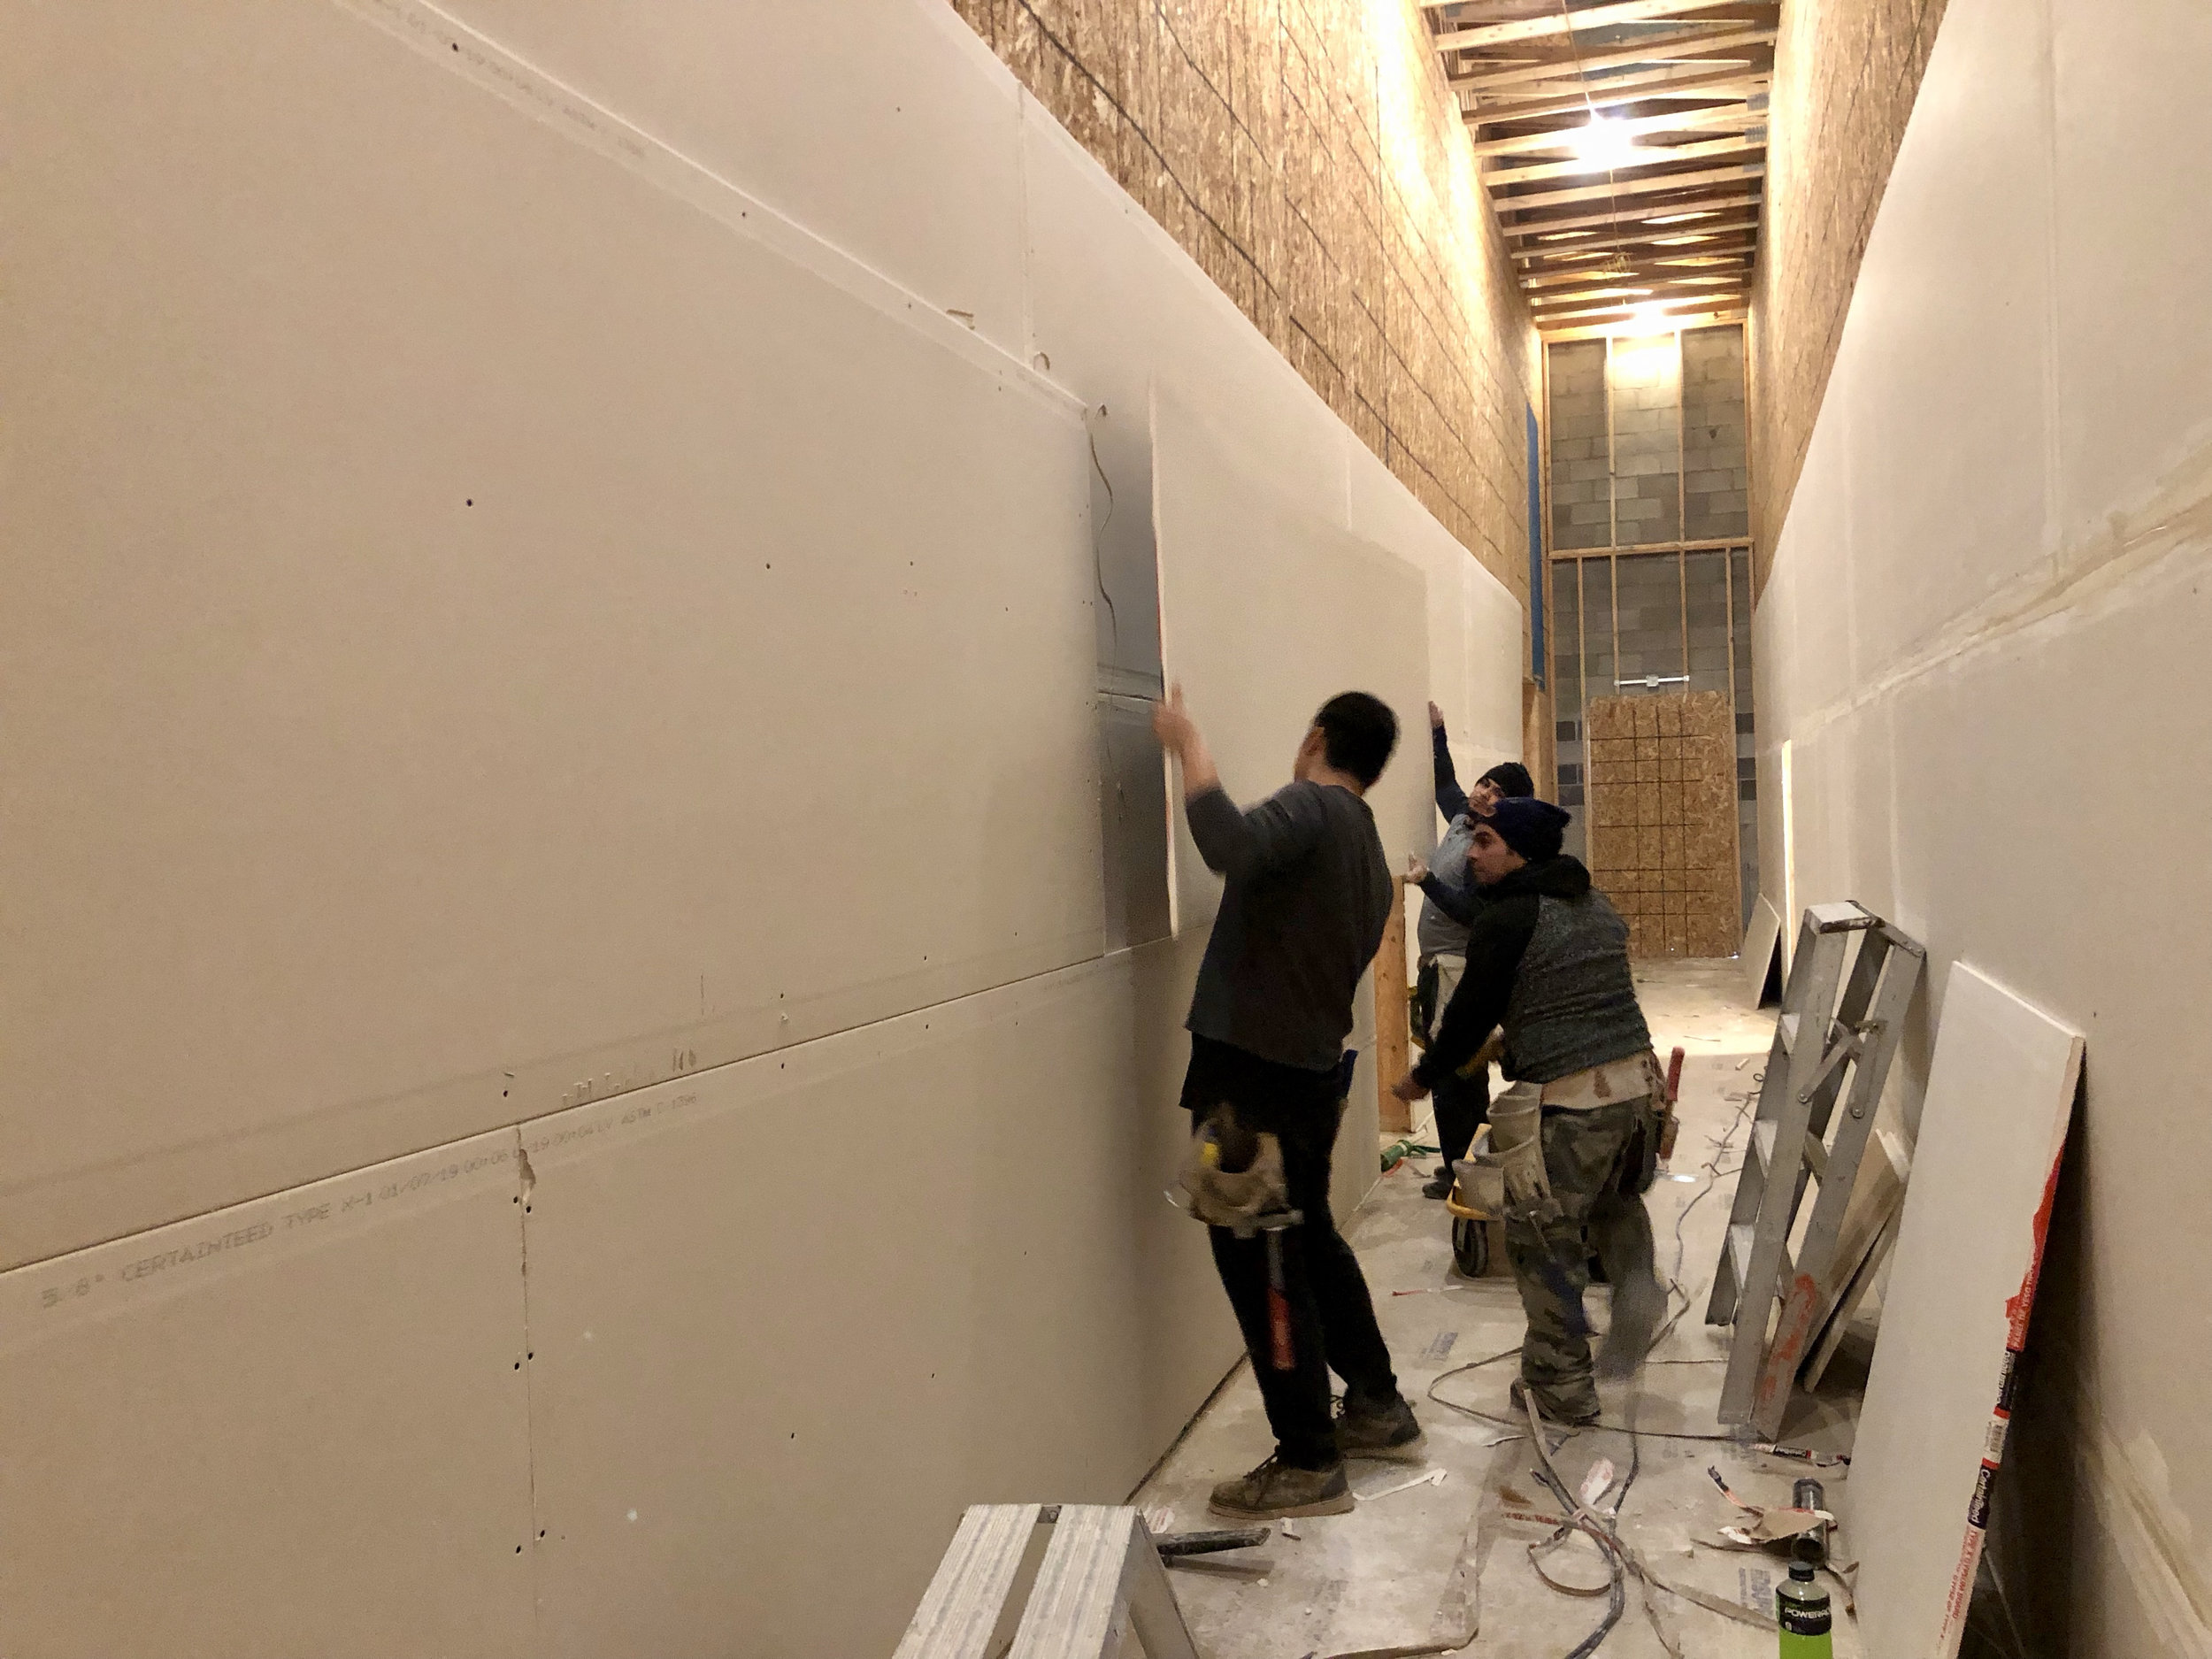 Sheetrock began in the hallway. 2 layers of 5/8' with staggered seems in the hallway. Both layers were taped and mudded.